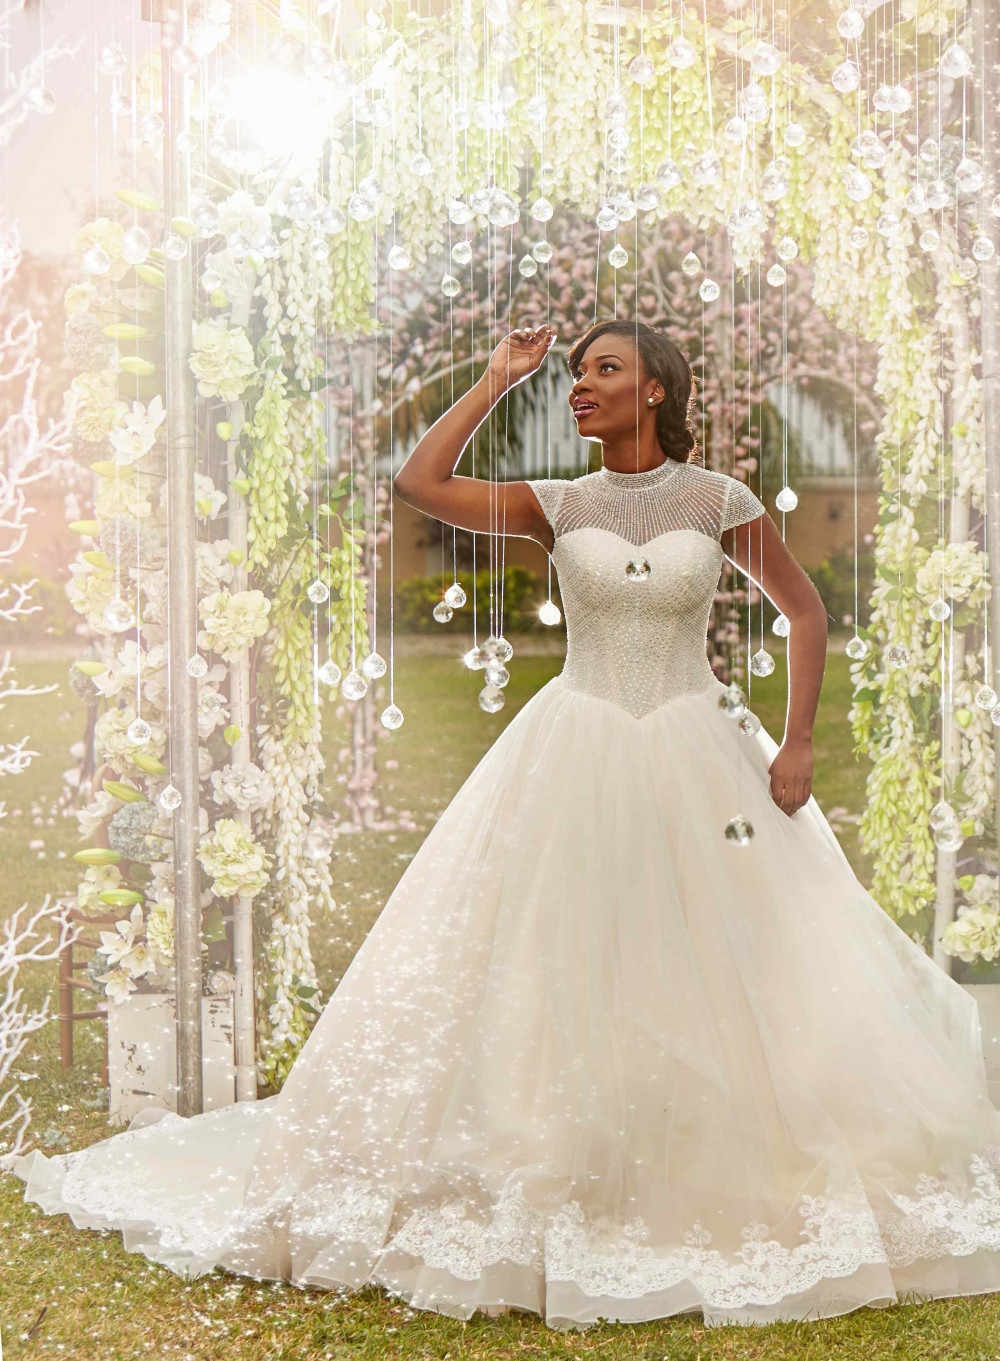 22b8d766d1d47 One of Nigeria's foremost events management company, Elizabeth R, is  pleased to announce the launch of, Avant Garde, its bridal store that  features an ...